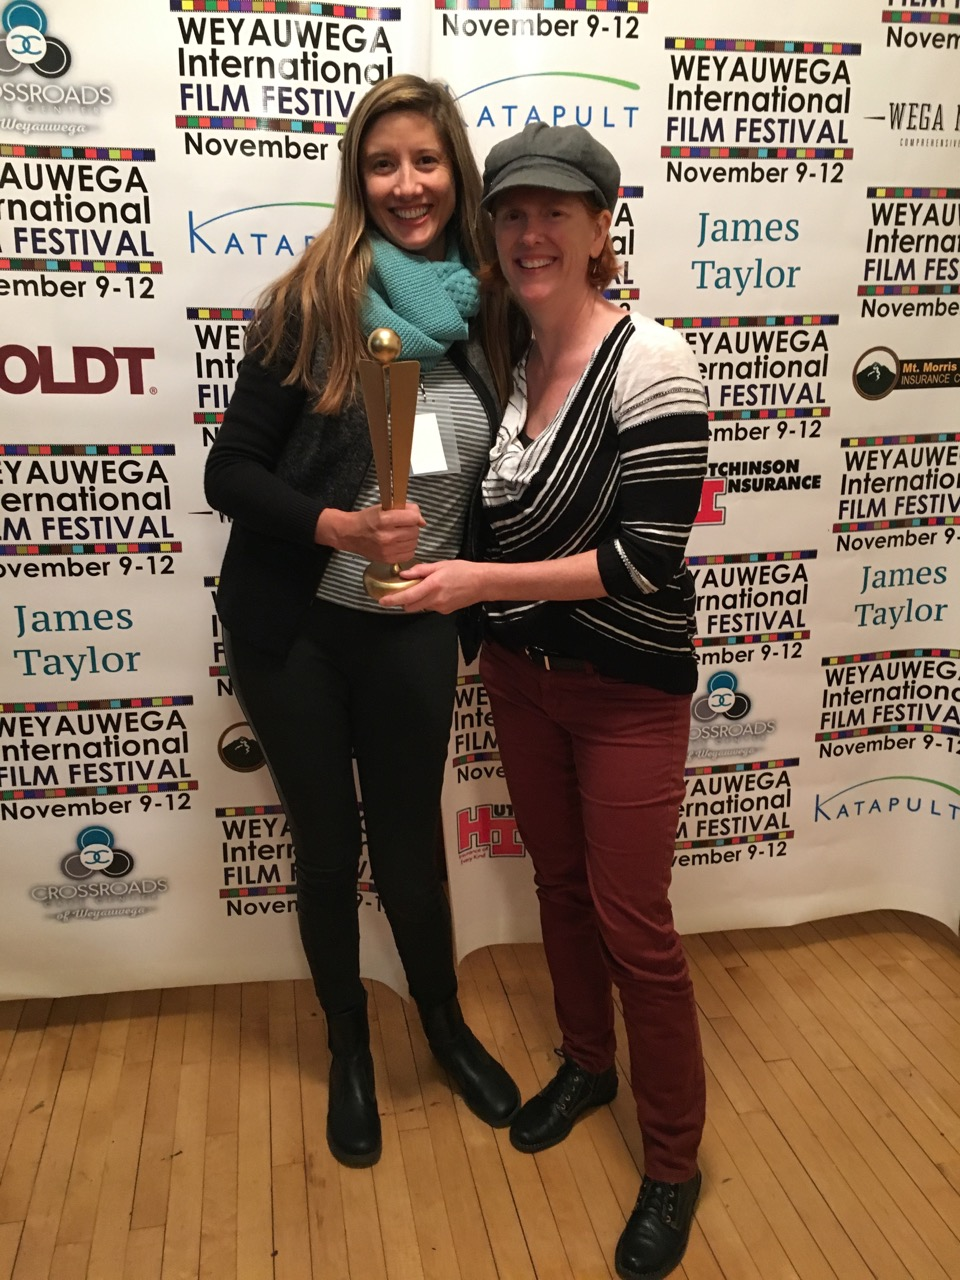 Producer Molly Hermann and Editor Kerry Sullivan